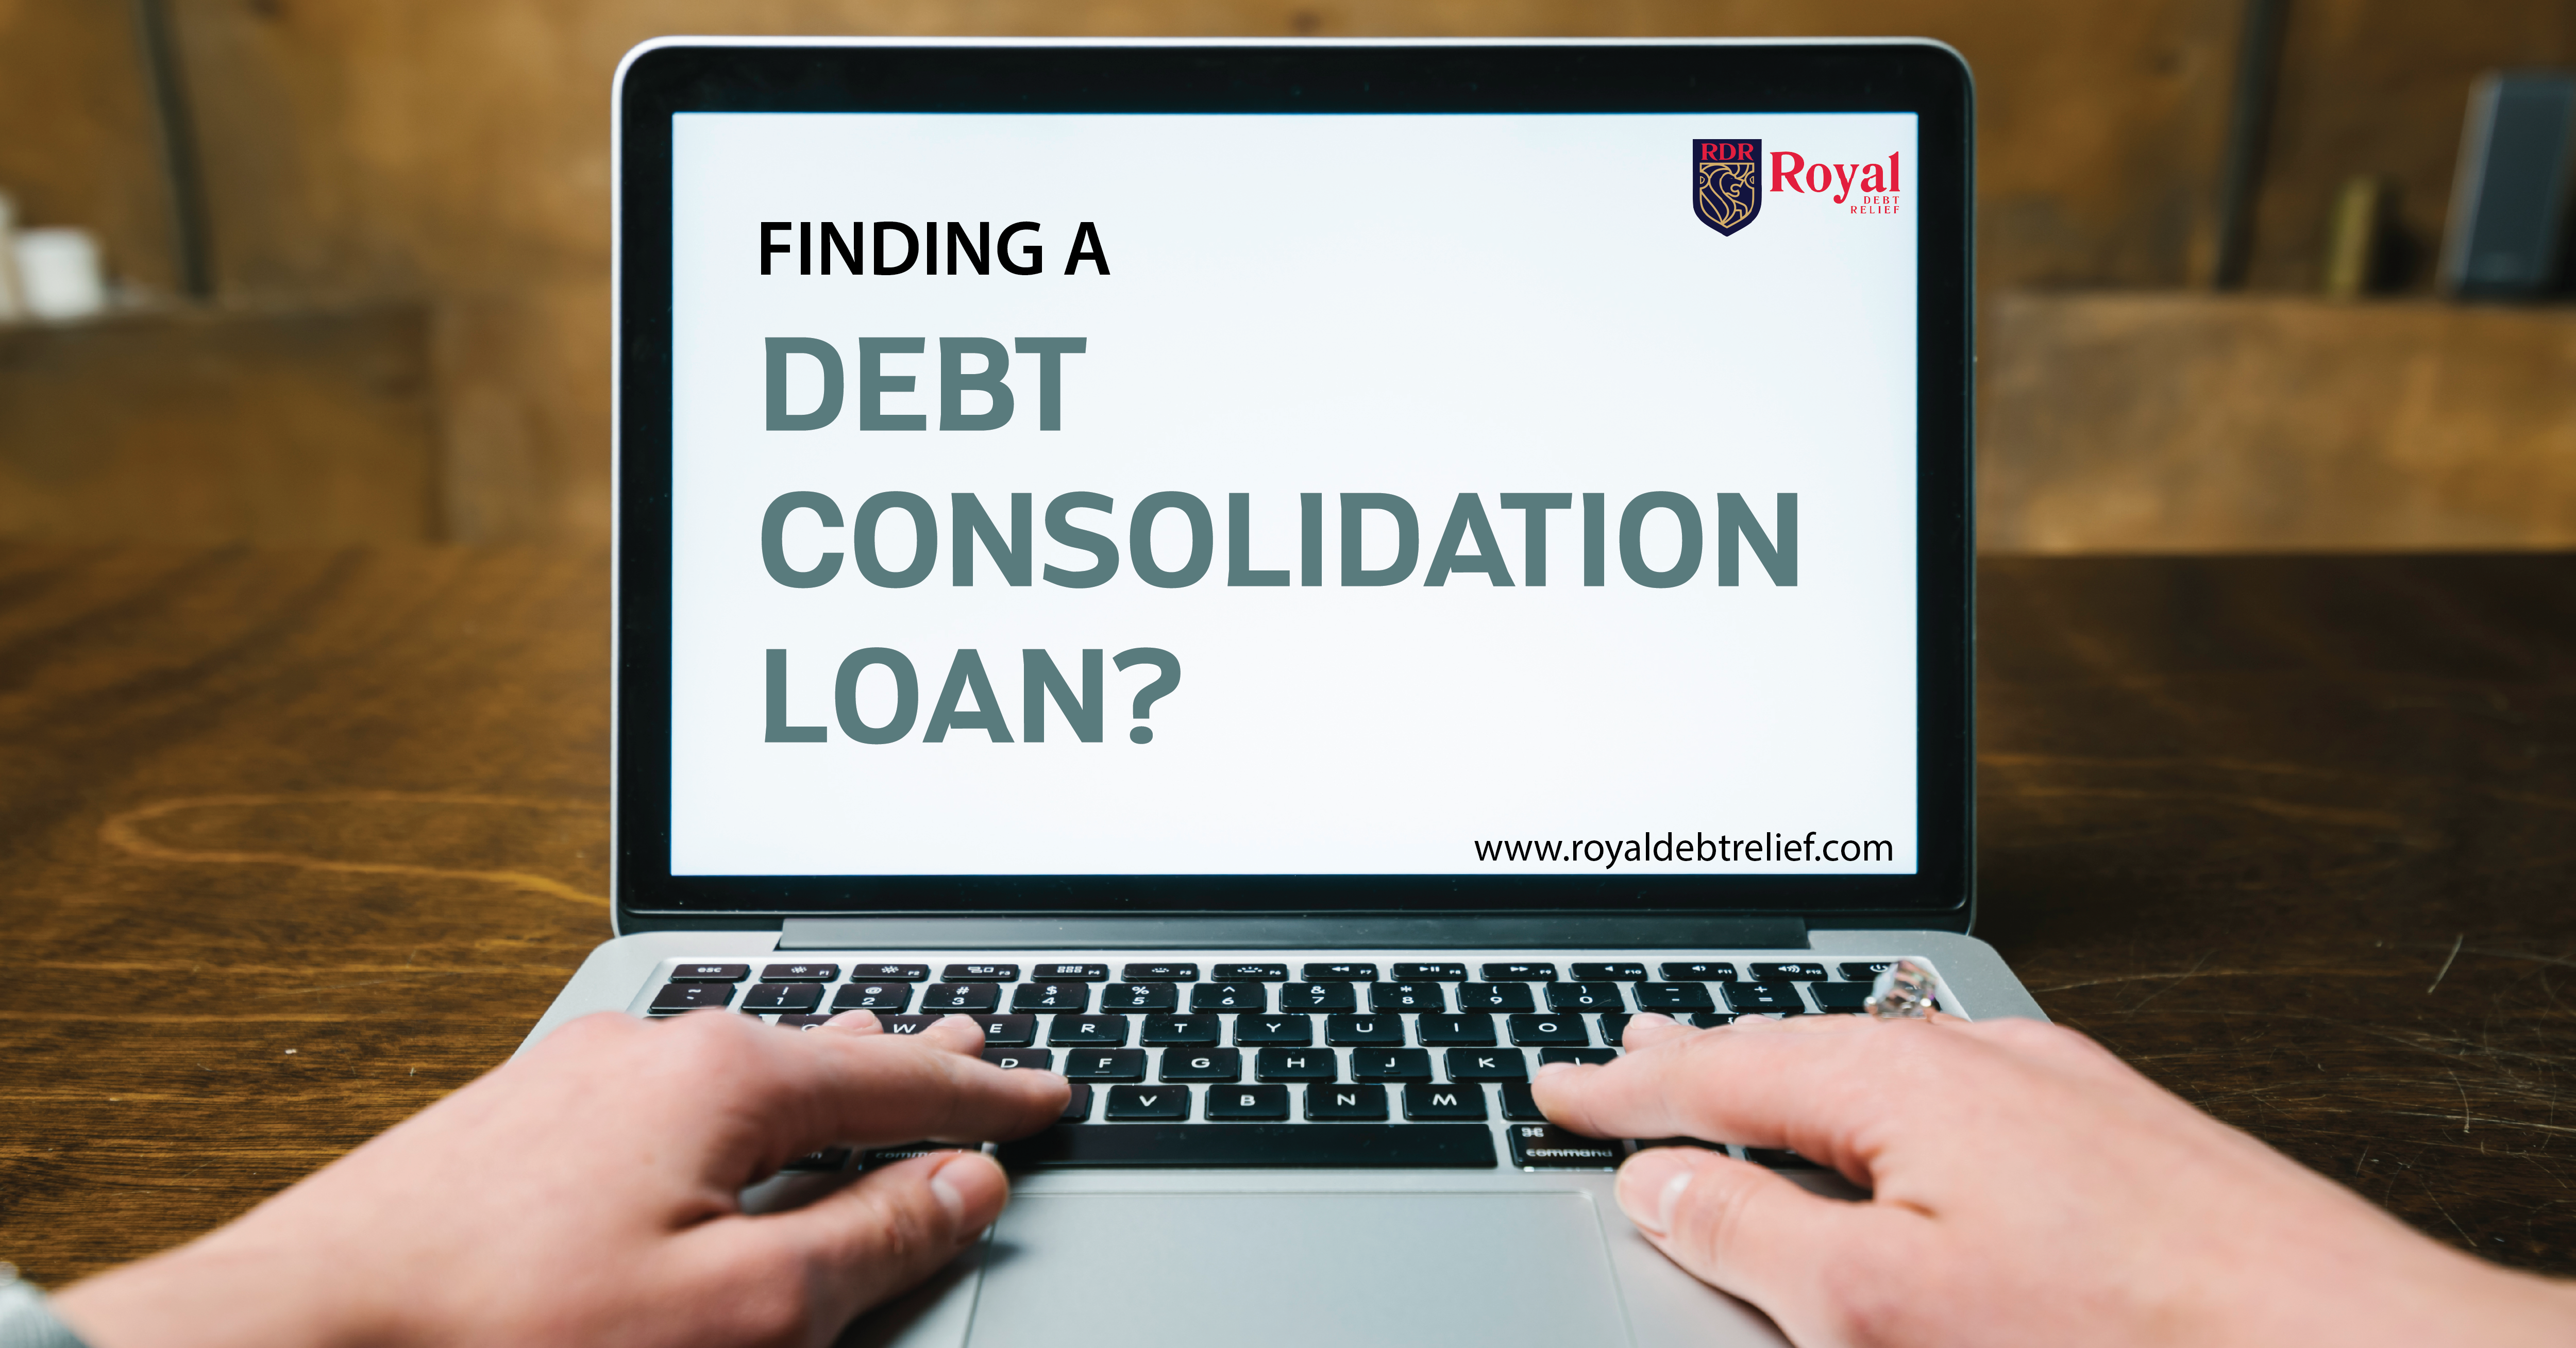 You Can Contact A Bank Credit Union Or A Financial Company To Approve A Consolidation Loan To Help You Pay Of Debt Consolidation Loans Loan Consolidation Debt